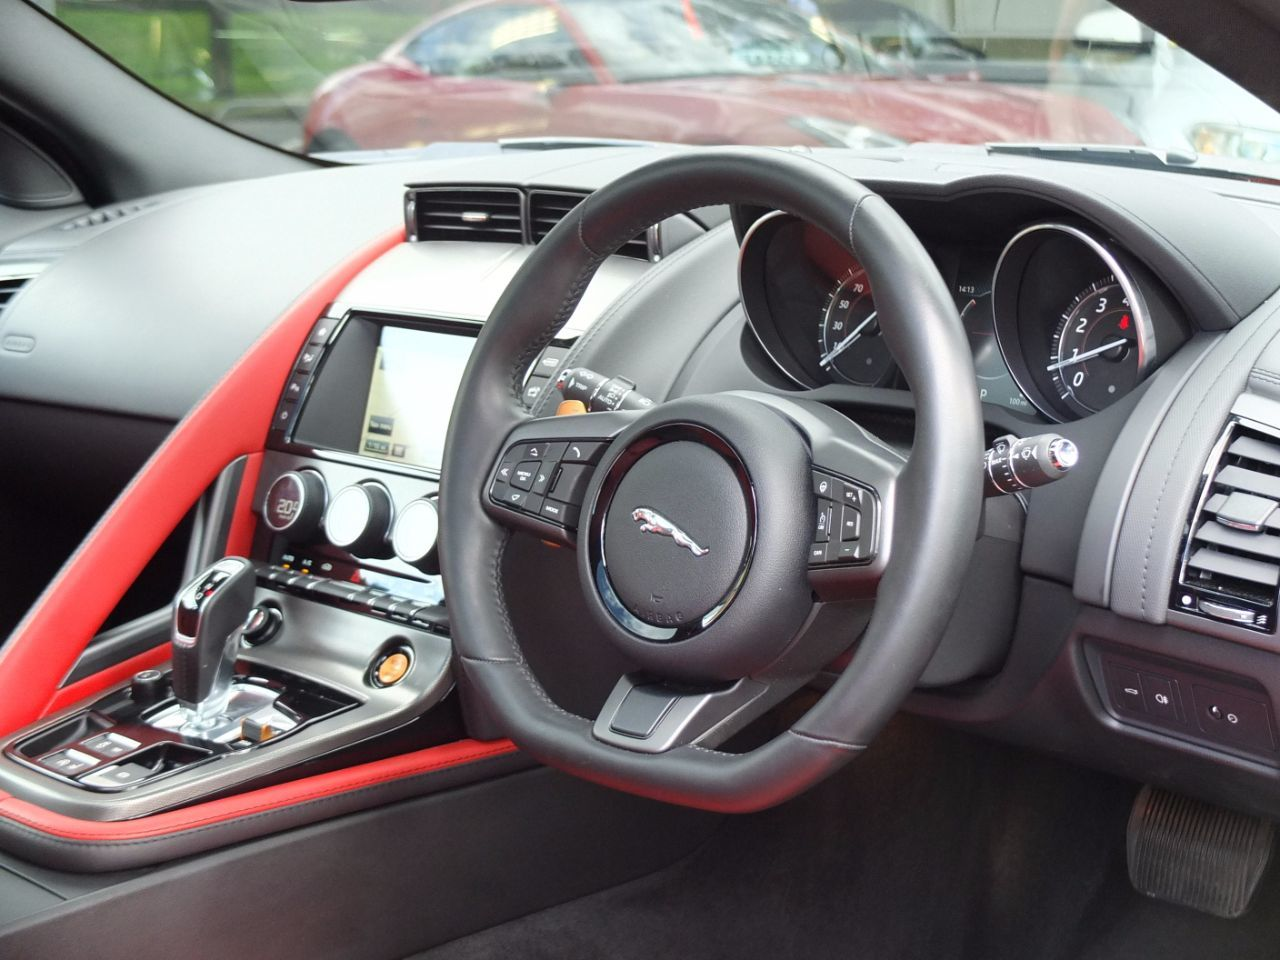 Jaguar F-type 3.0 Supercharged V6 S Auto 380ps Coupe Petrol Caldera Red